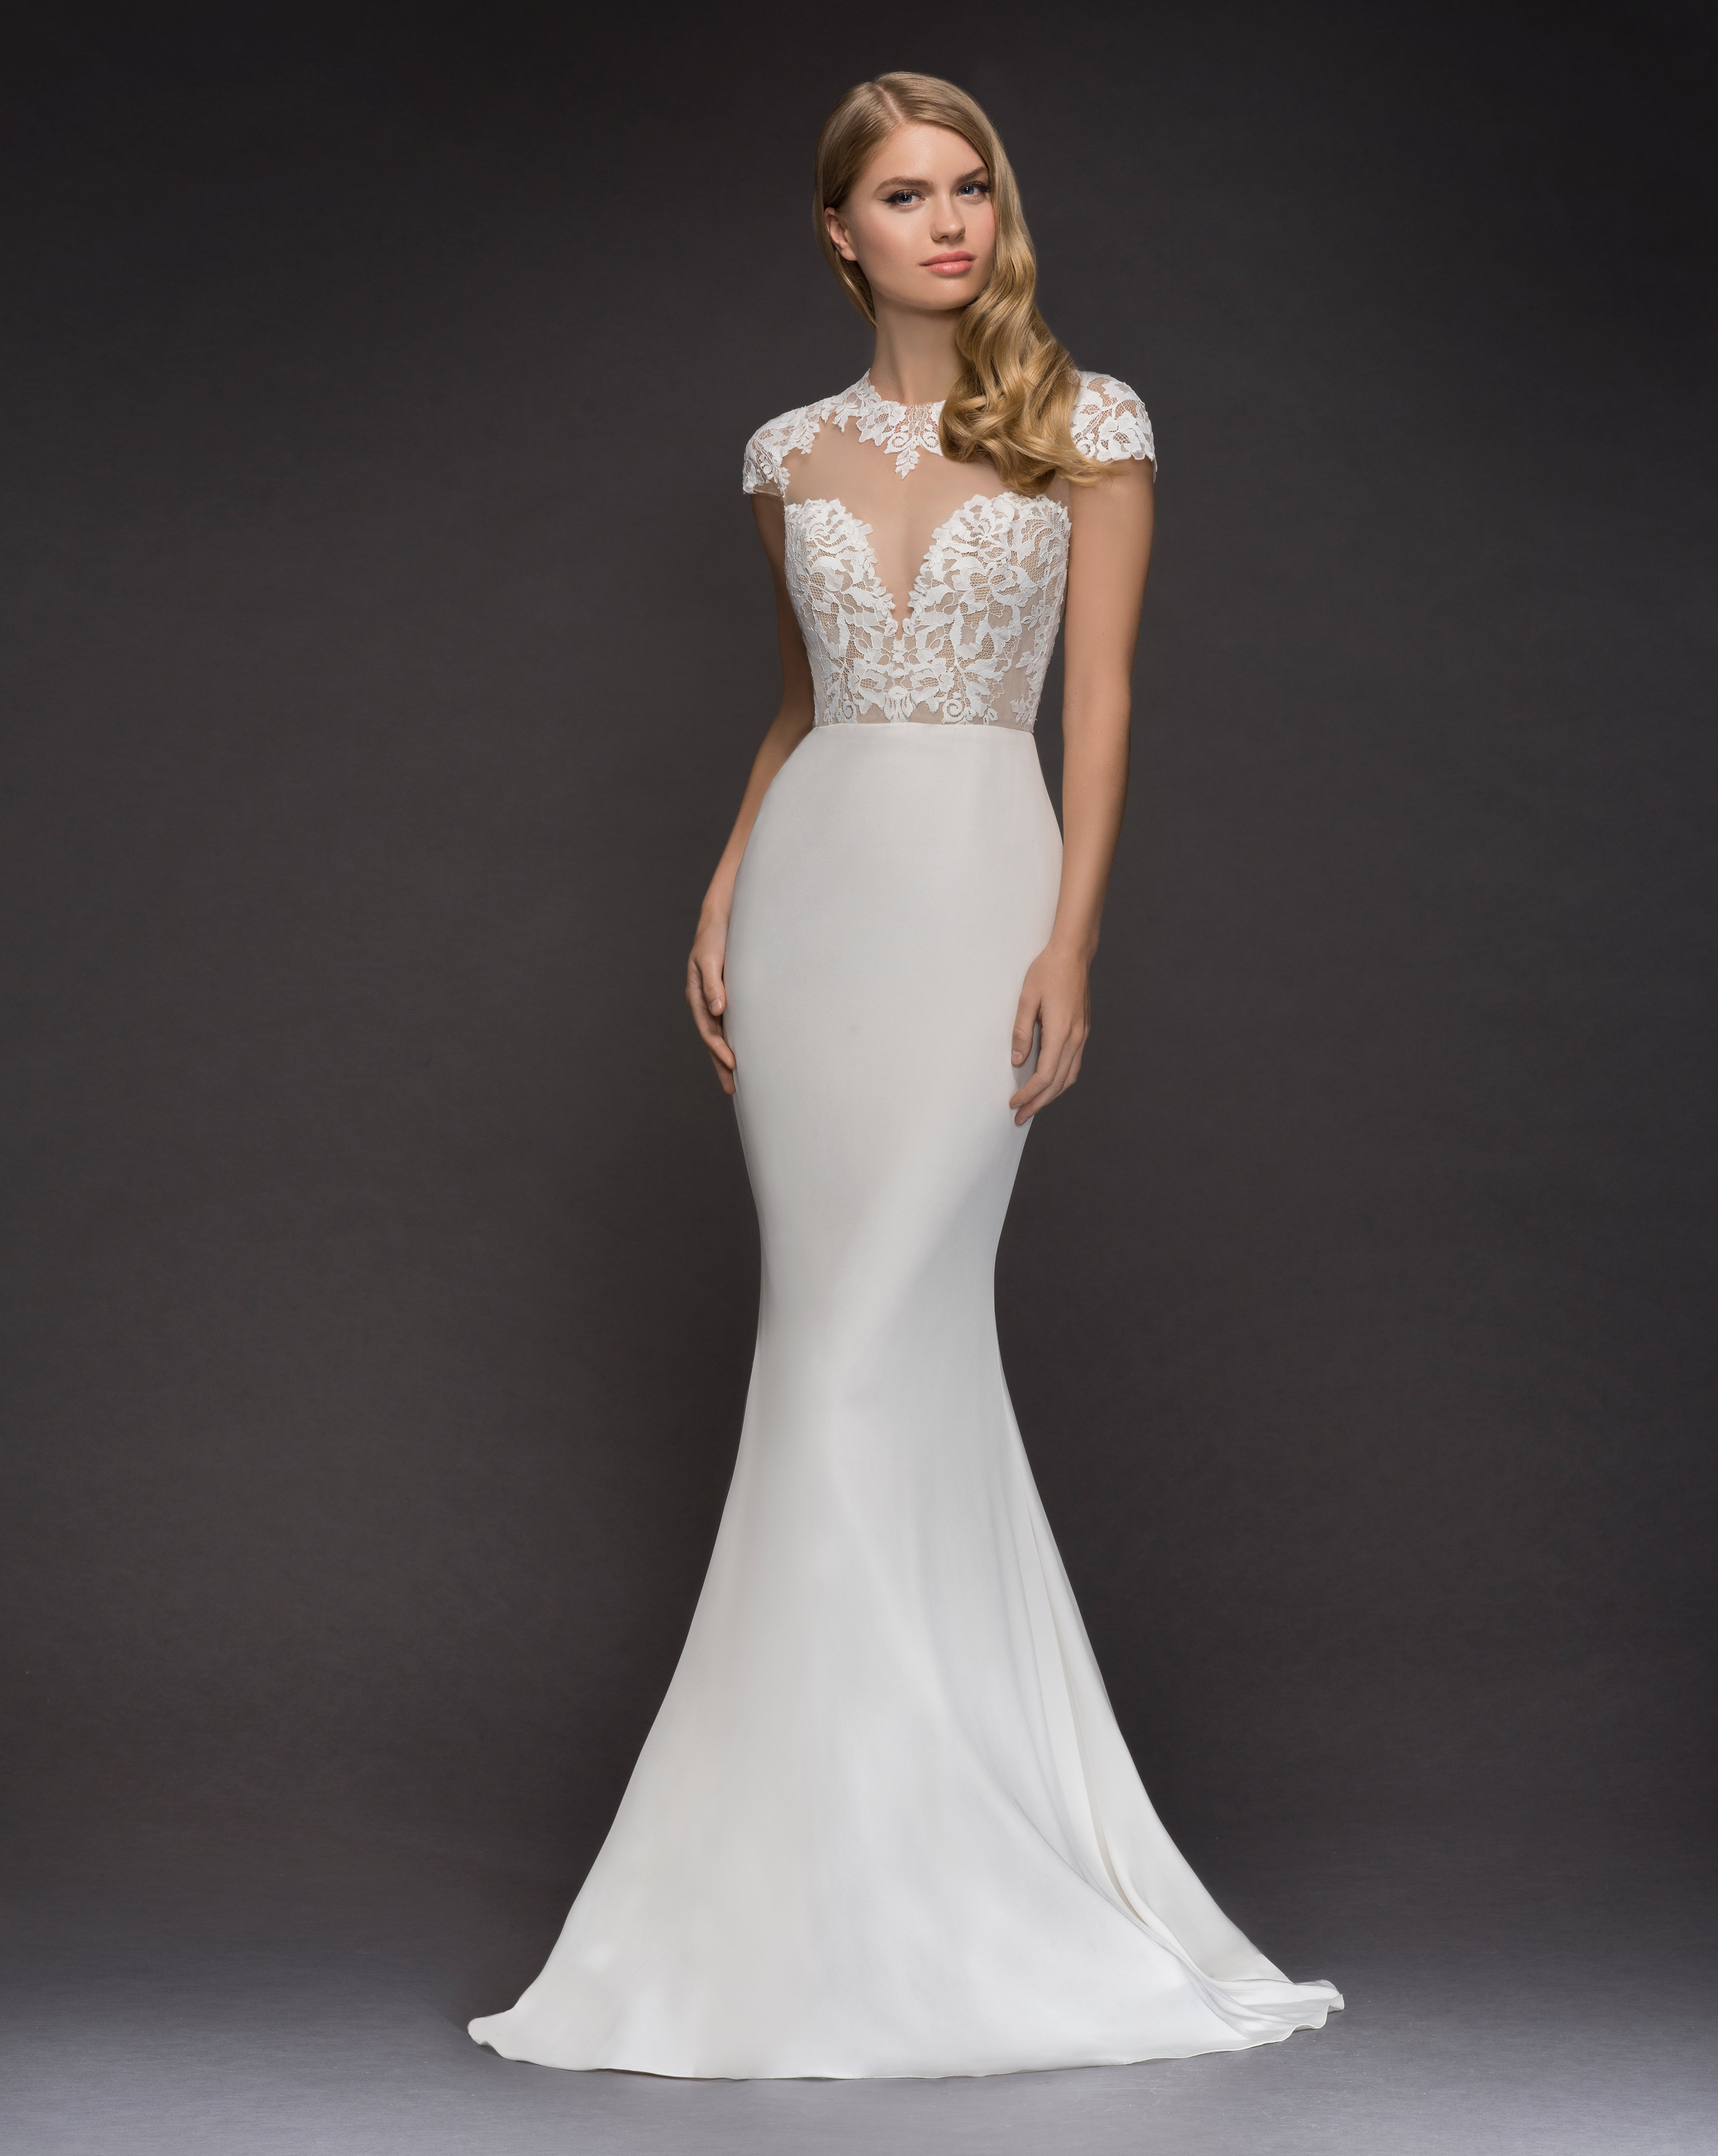 806859a6da43 Bridal Gowns and Wedding Dresses by JLM Couture - Style 1819 Daisy